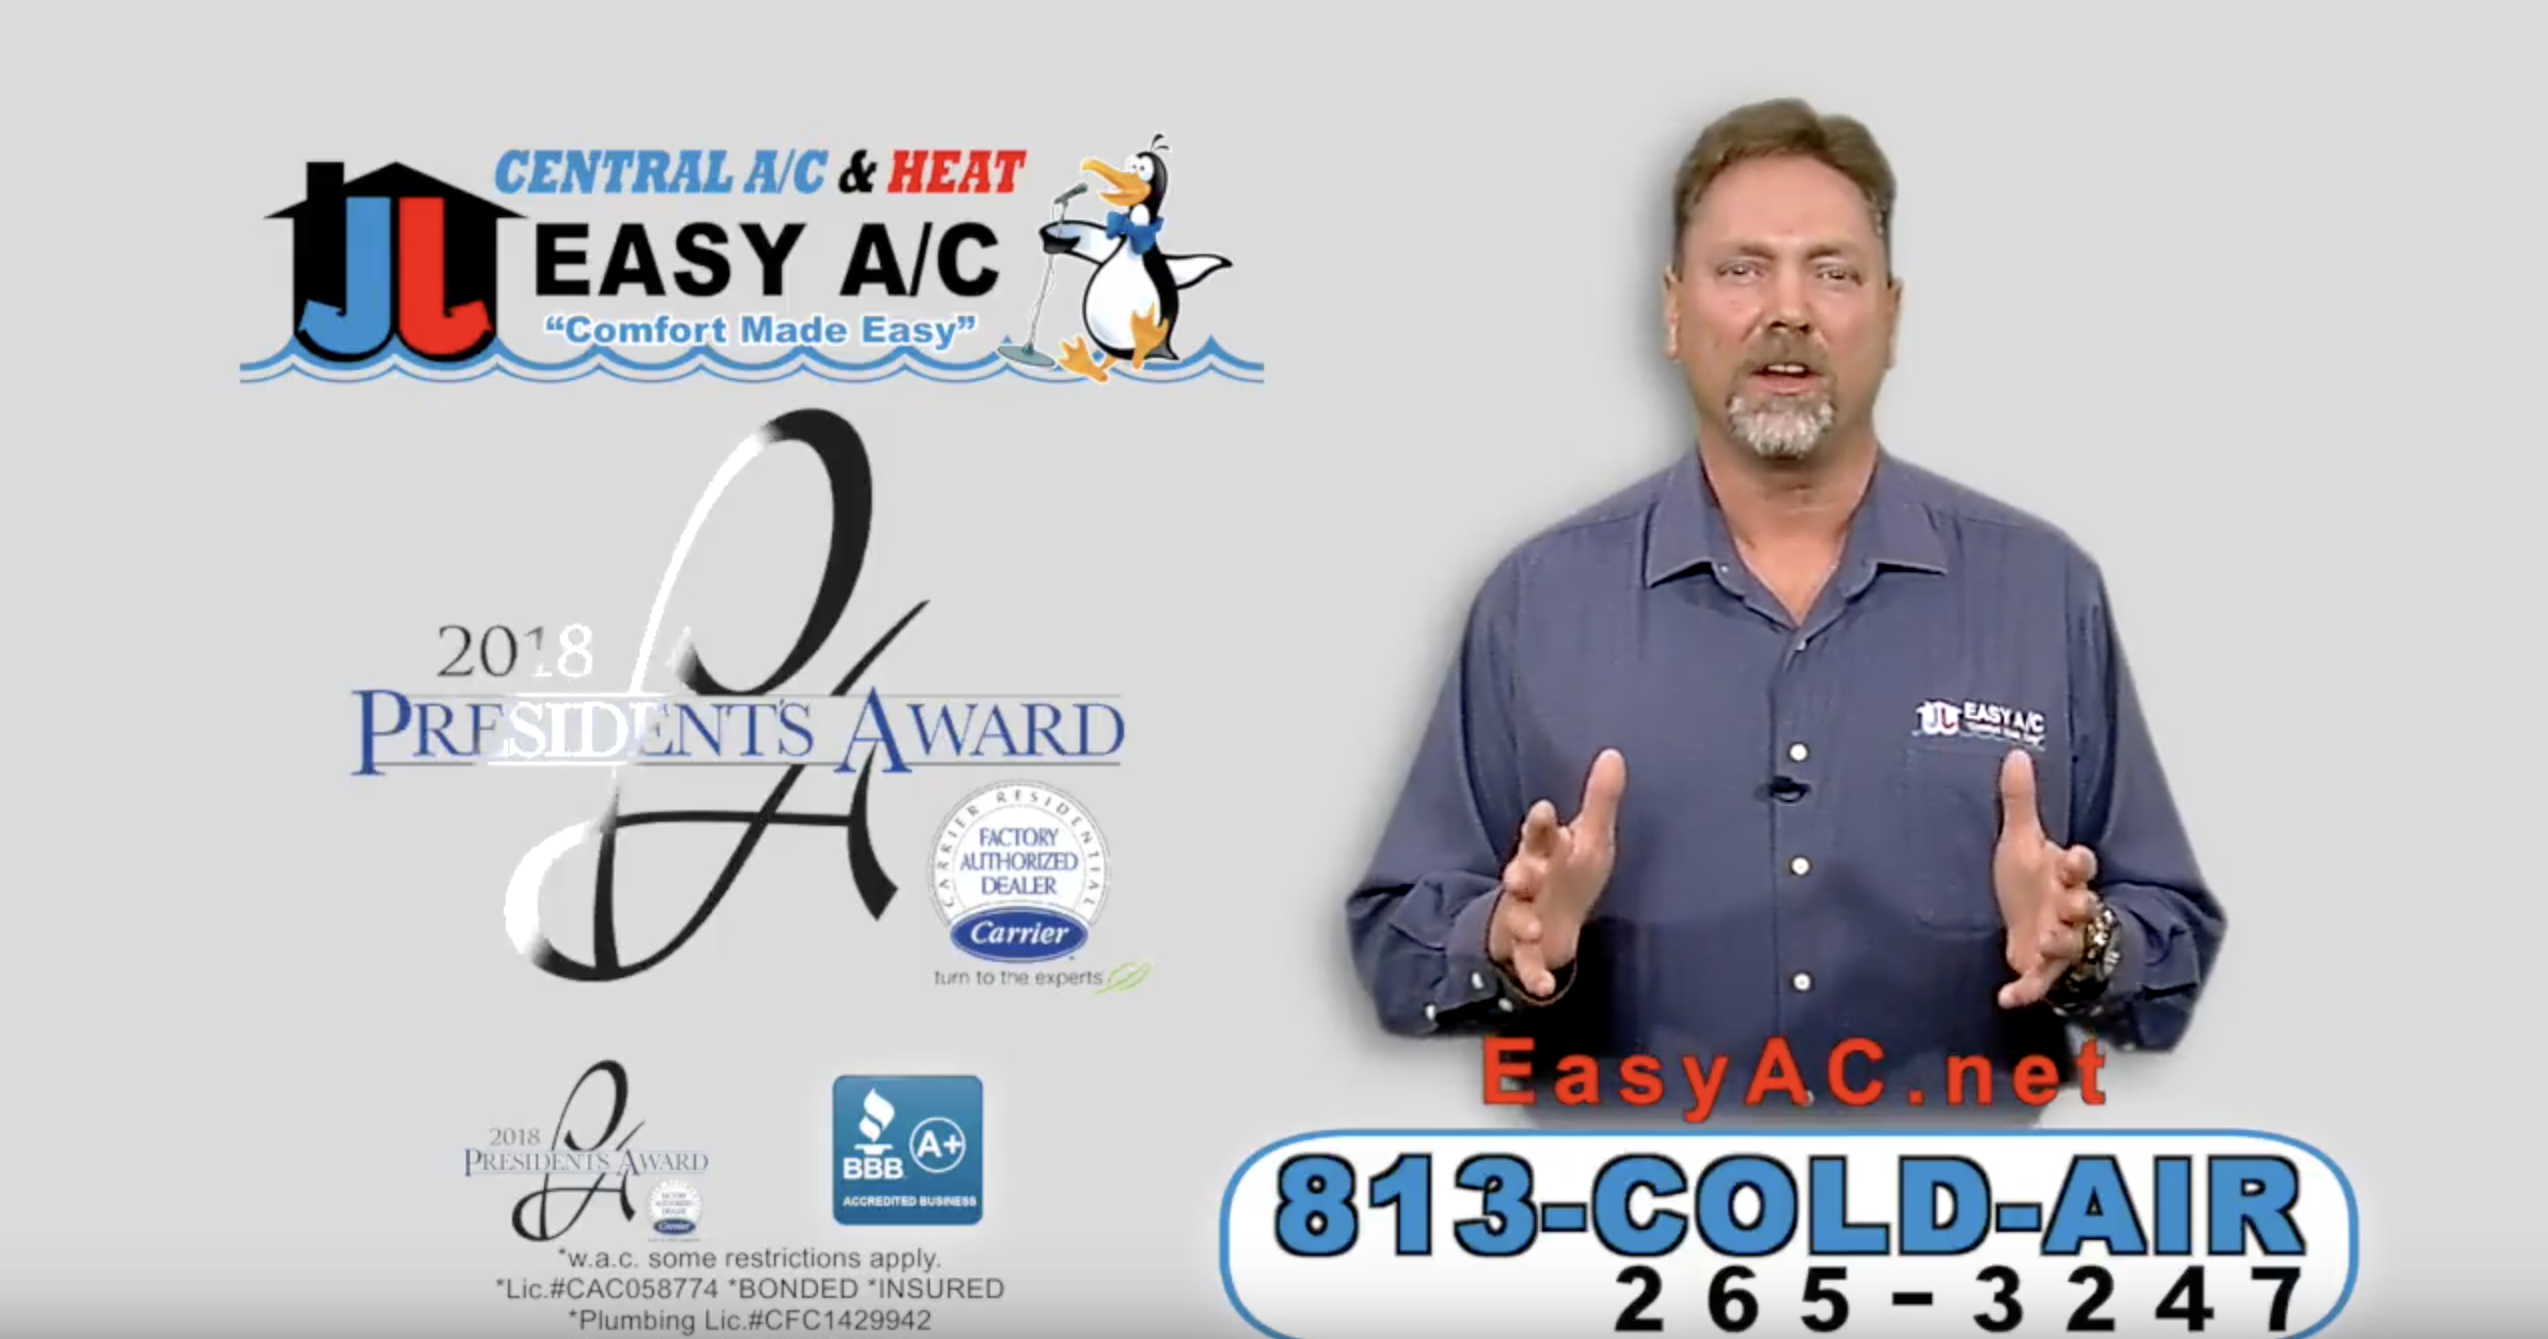 Easy A/C won the Carrier's 2018 President's Award for